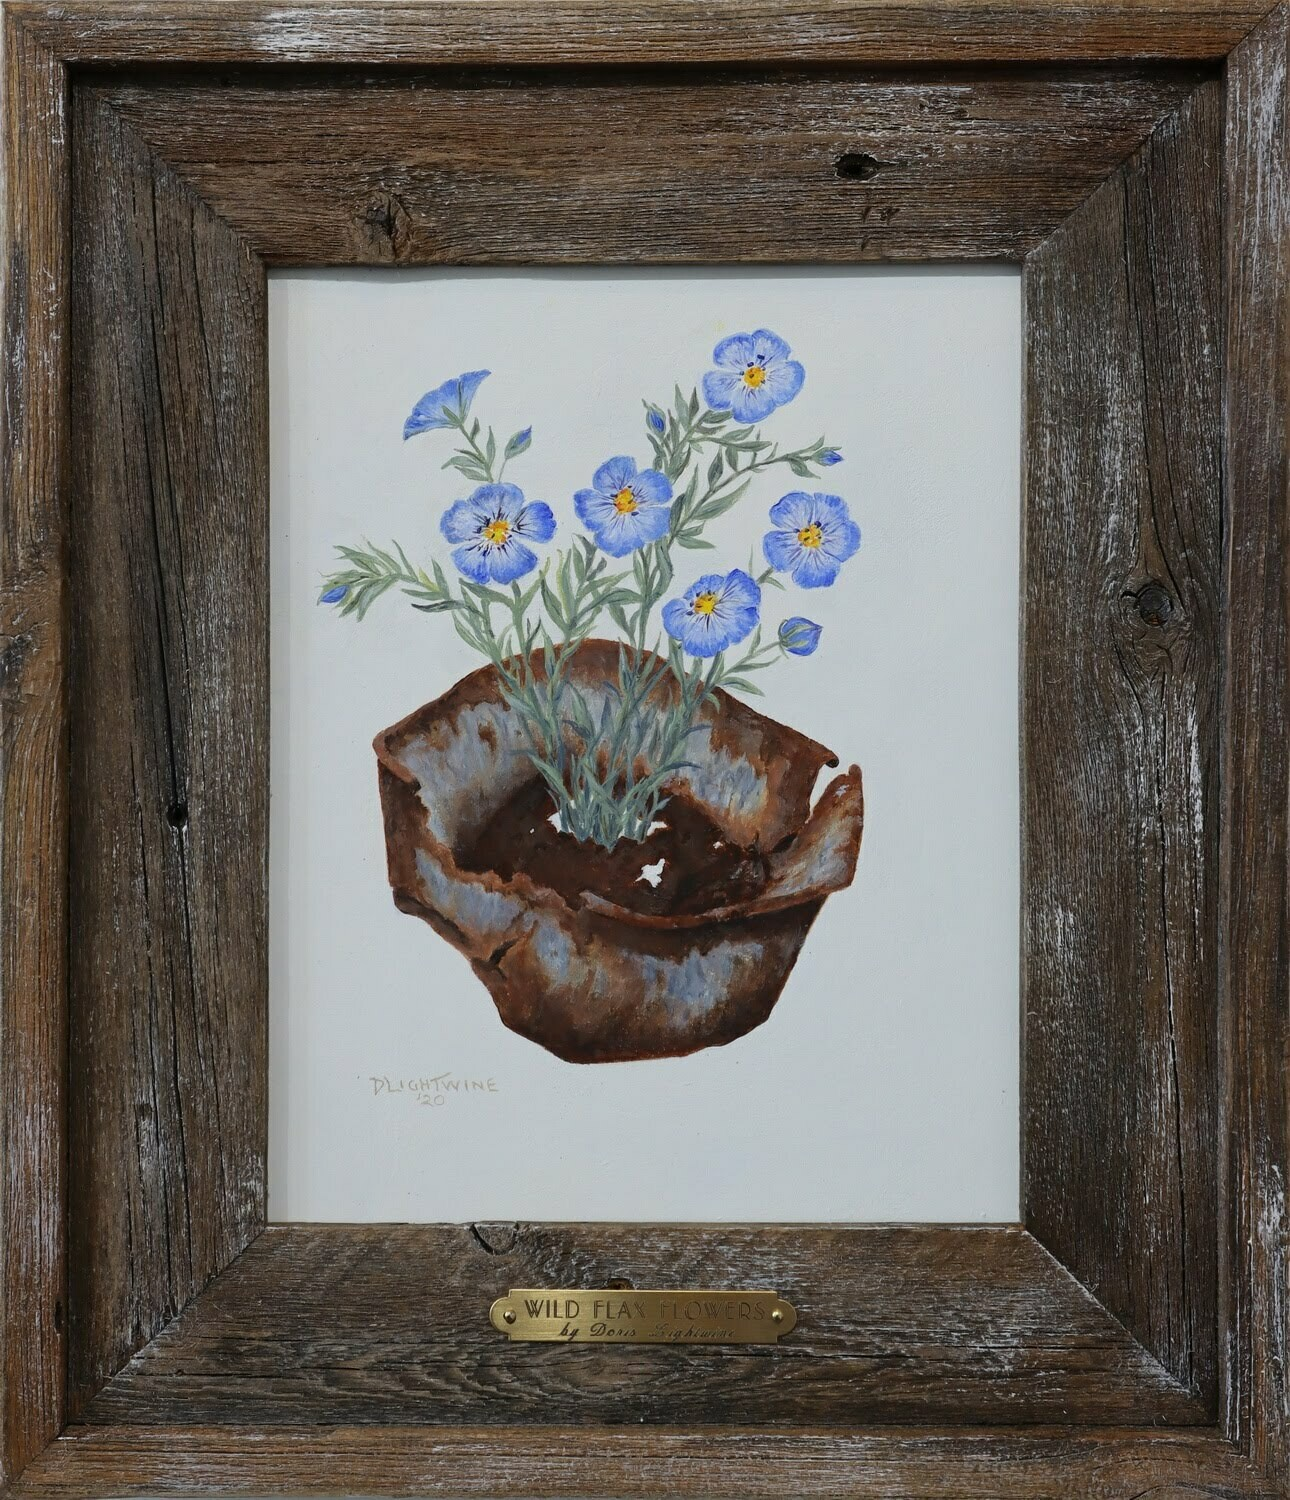 """Wild Flax Flower"" Doris Lightwine"